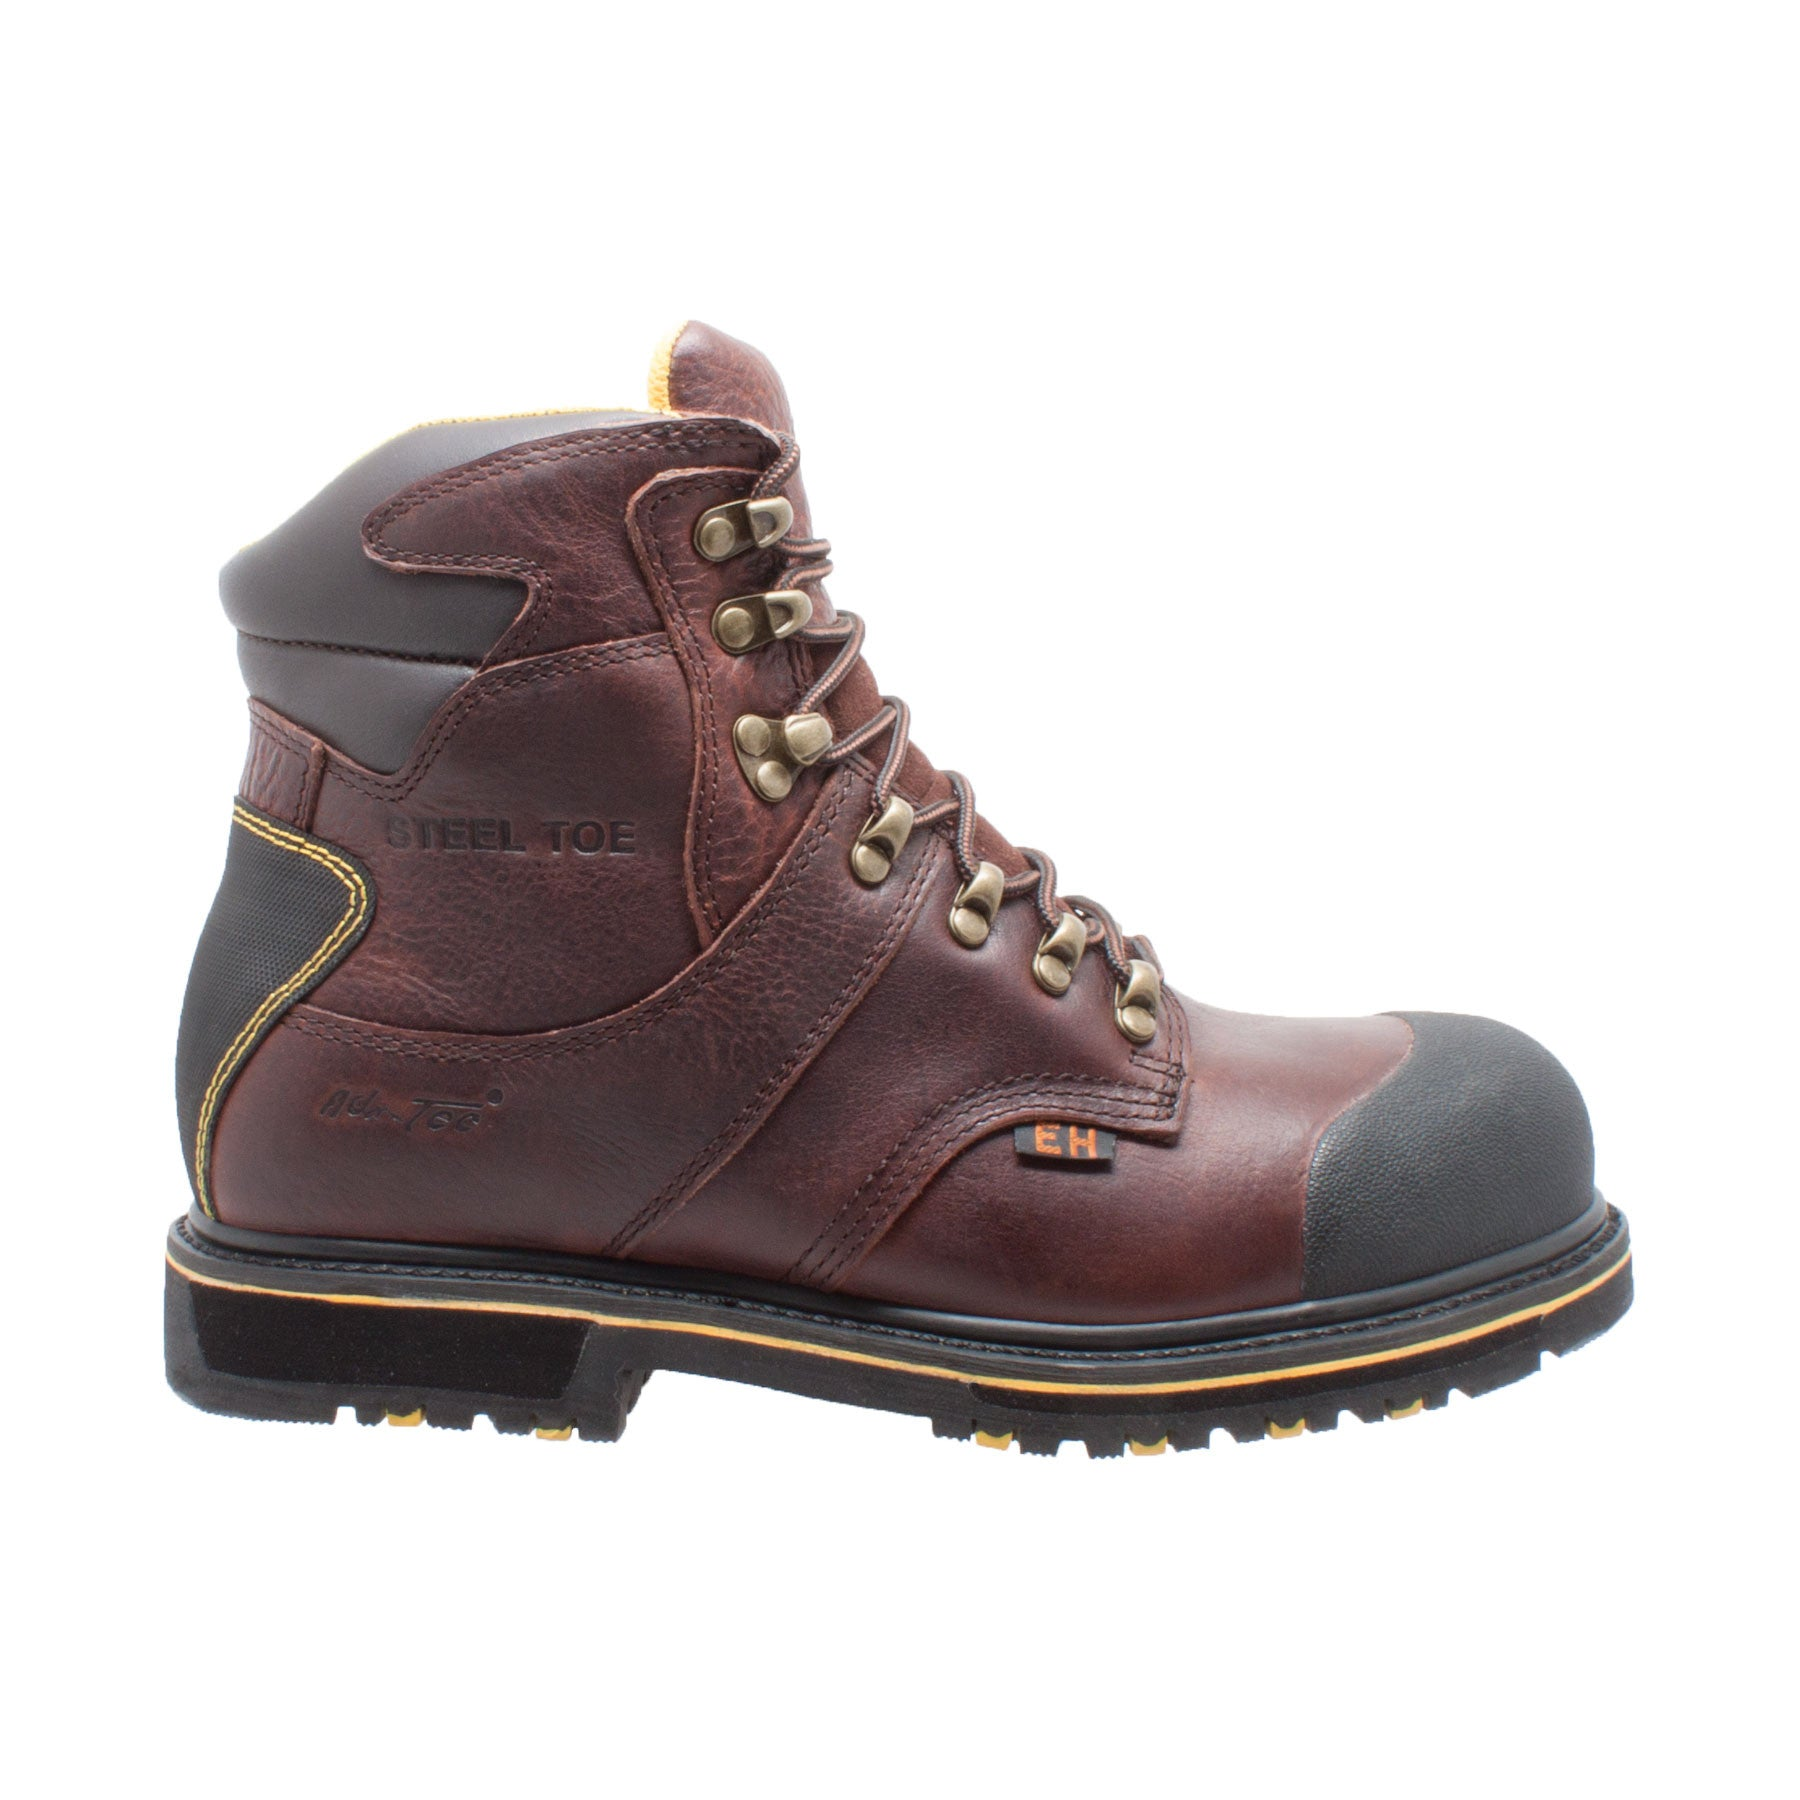 "Men's 6"" Steel Toe Waterproof Work Boot Dark Brown - 9722 - Shop Genuine Leather men & women's boots online 